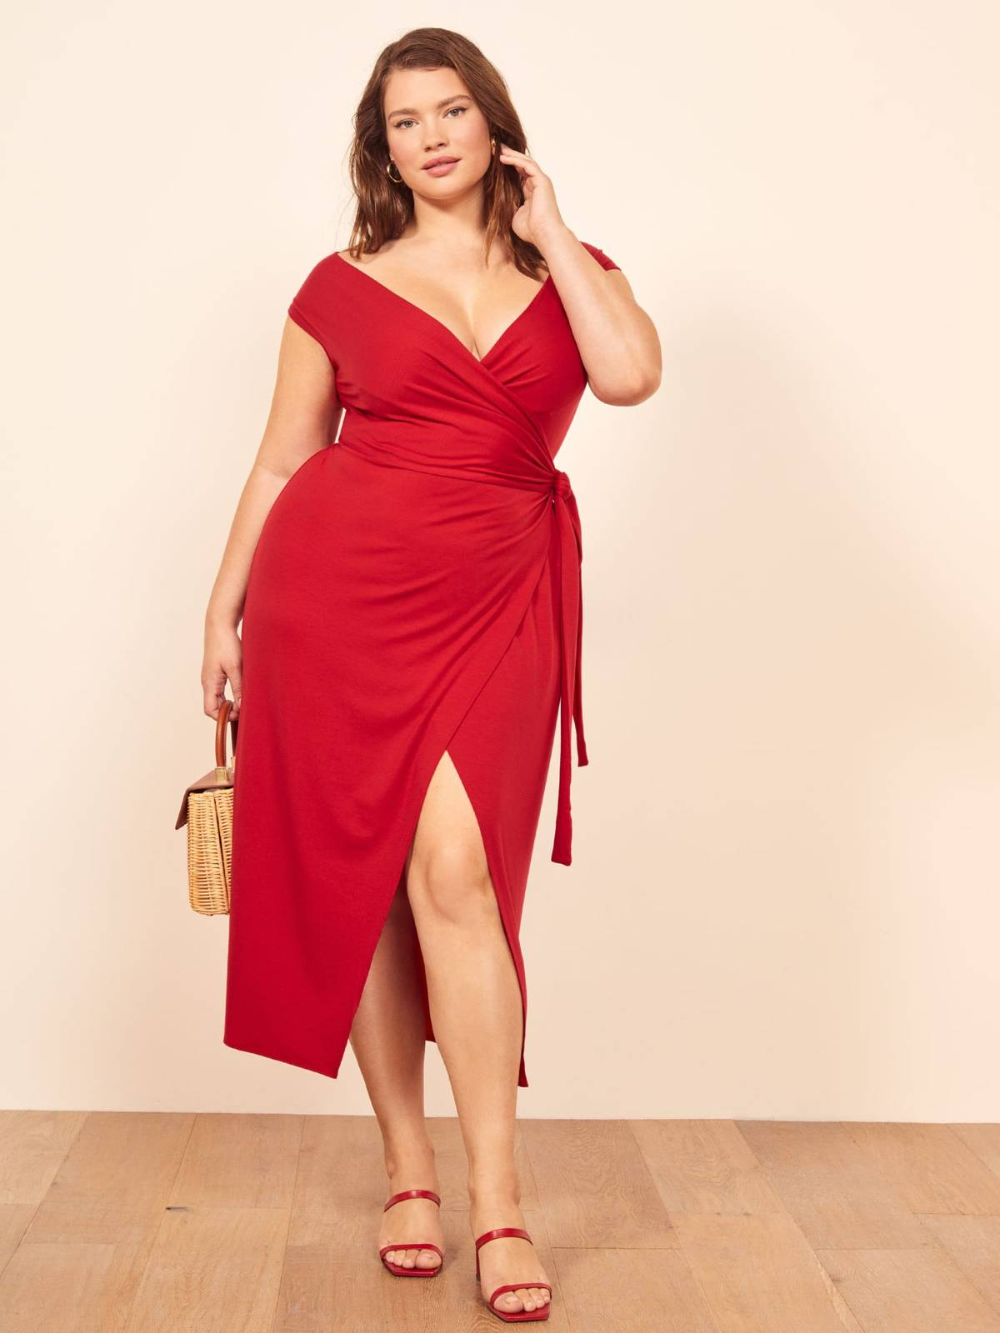 Can You Wear Red To A Wedding This Is The Definitive Answer In 2020 Sage Dress Dresses Dinner Outfit Spring